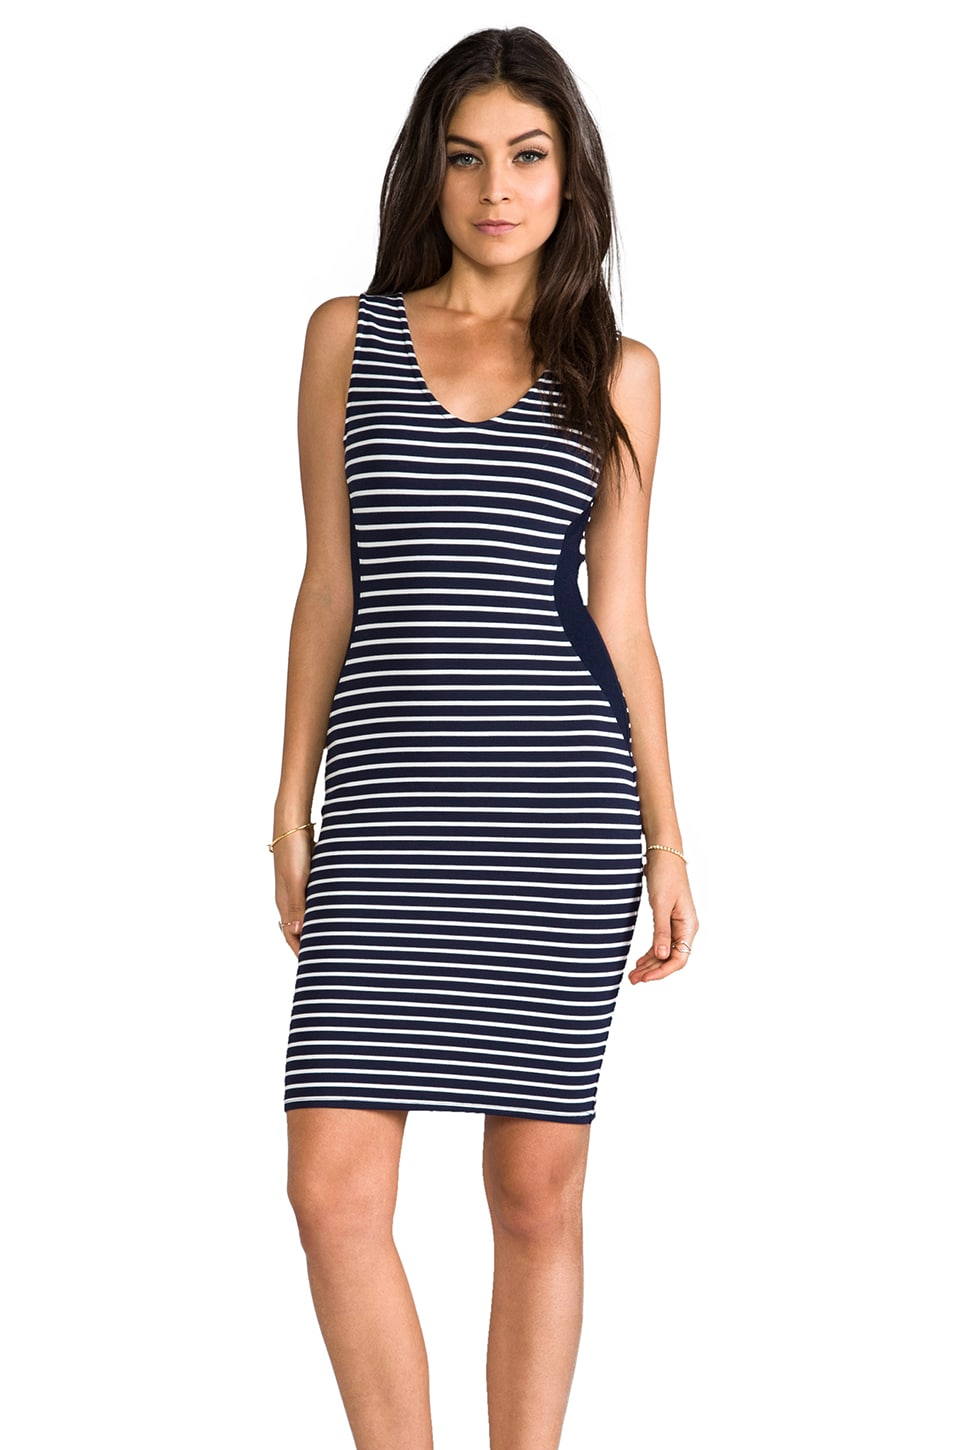 Velvet by Graham & Spencer Velvet Ponti Stripes Milly Dress in Navy